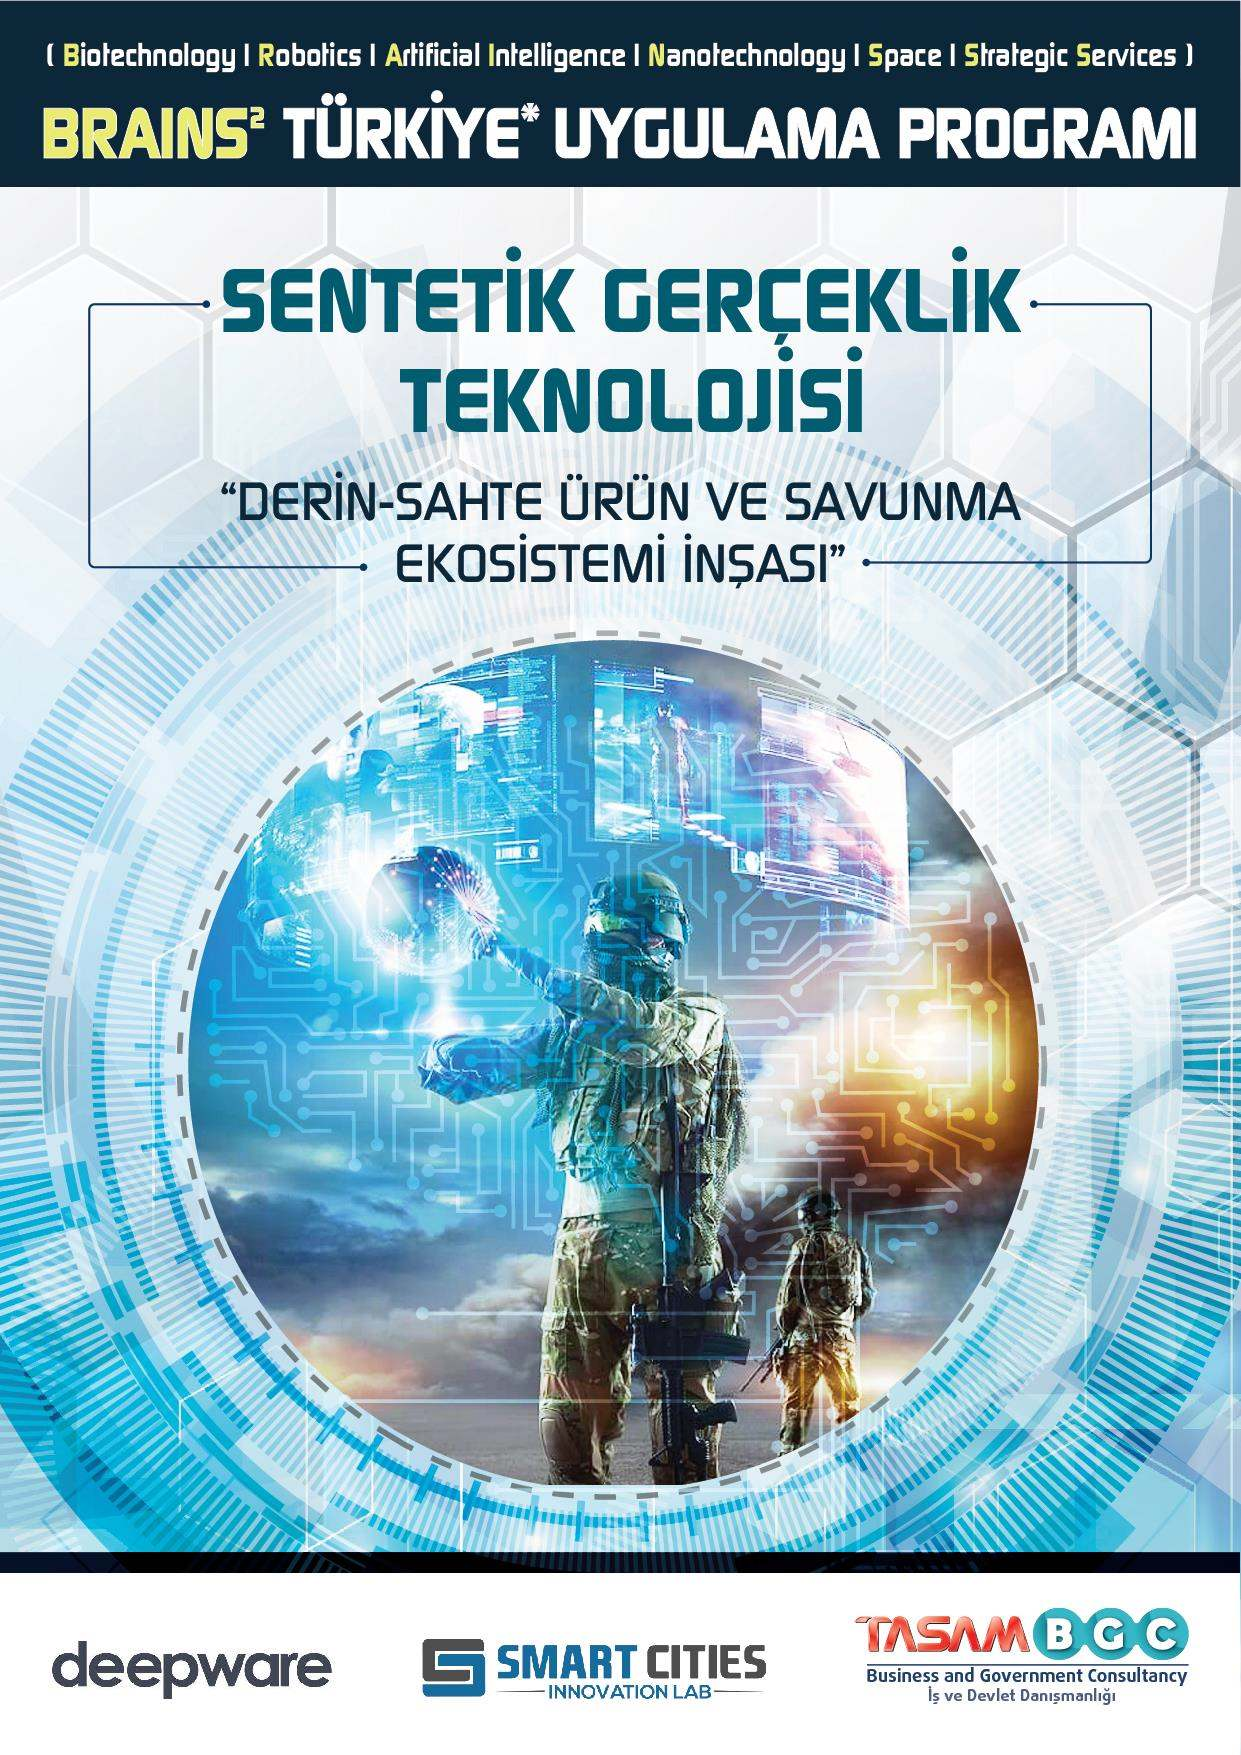 Synthetic Reality Technology (Deep Fake)  [ BRAINS² Turkey * Implementation Program ]